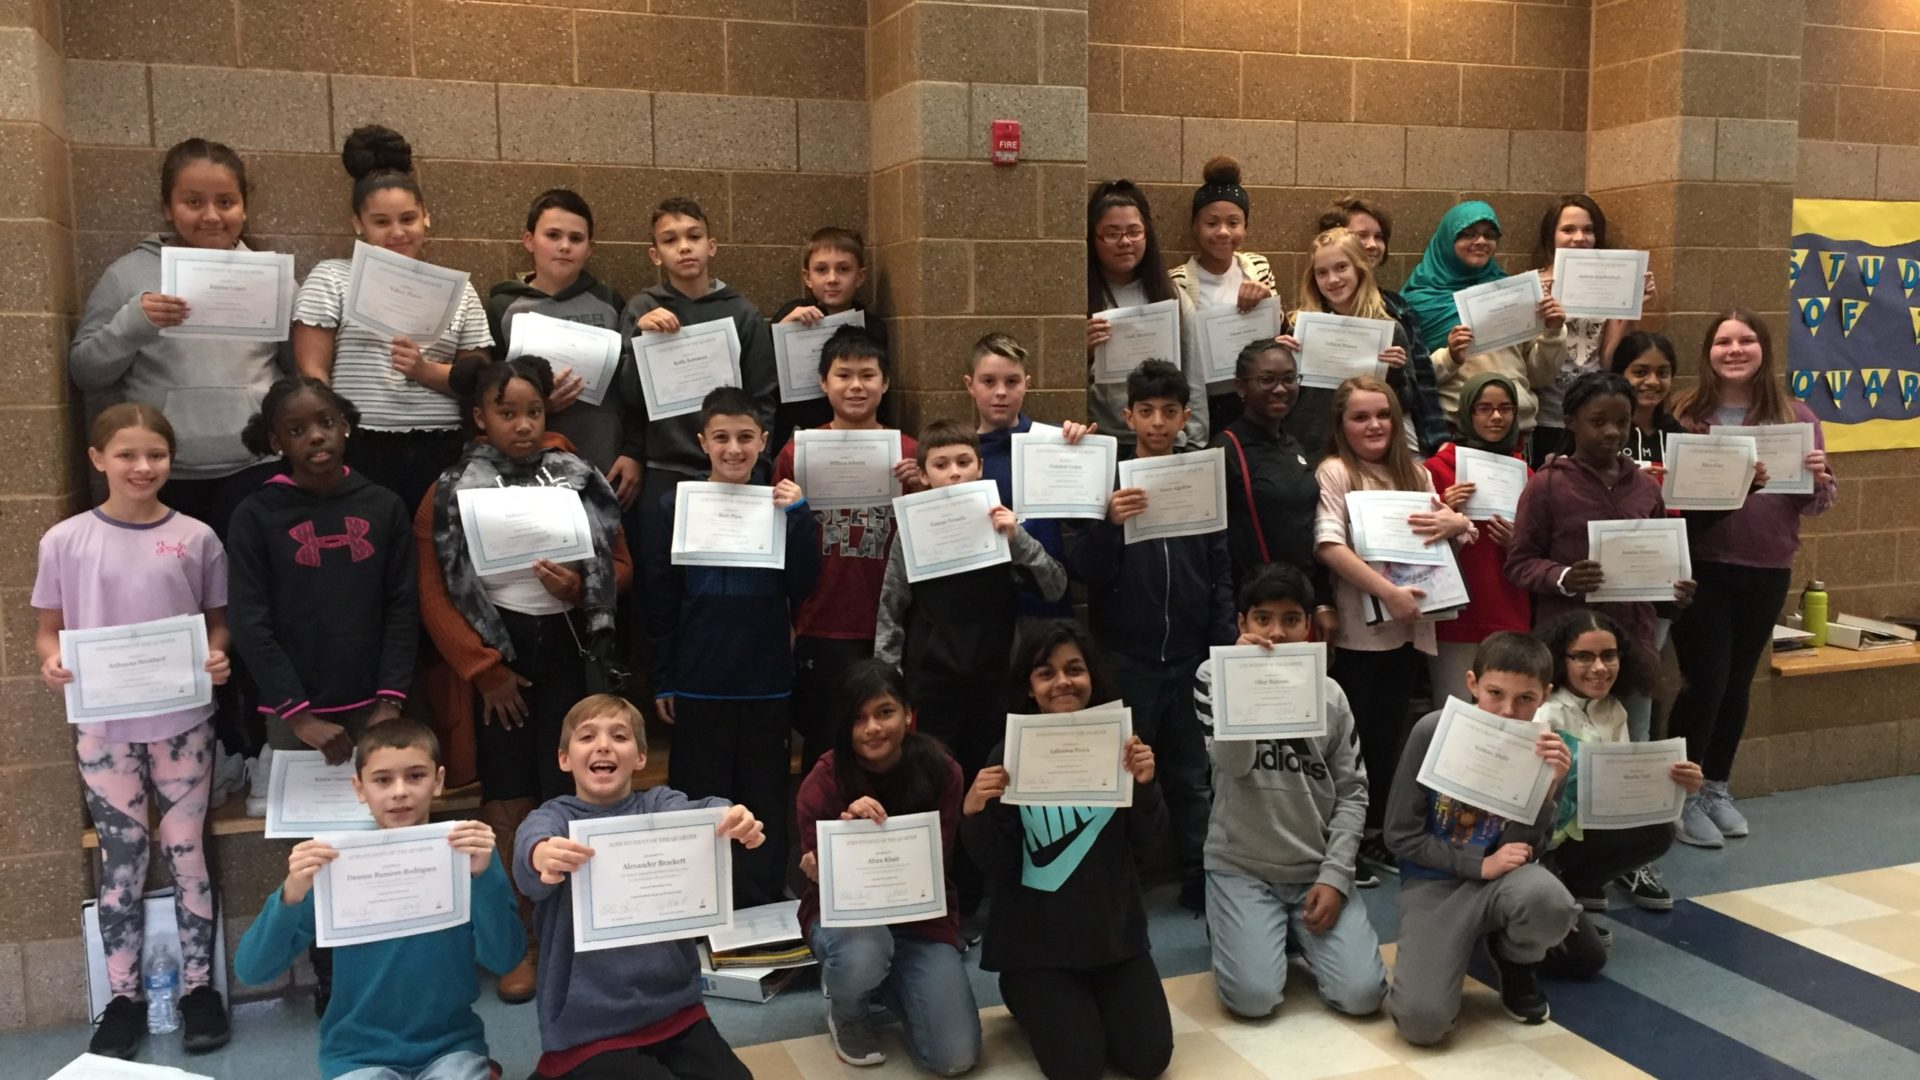 students stand holding certificates